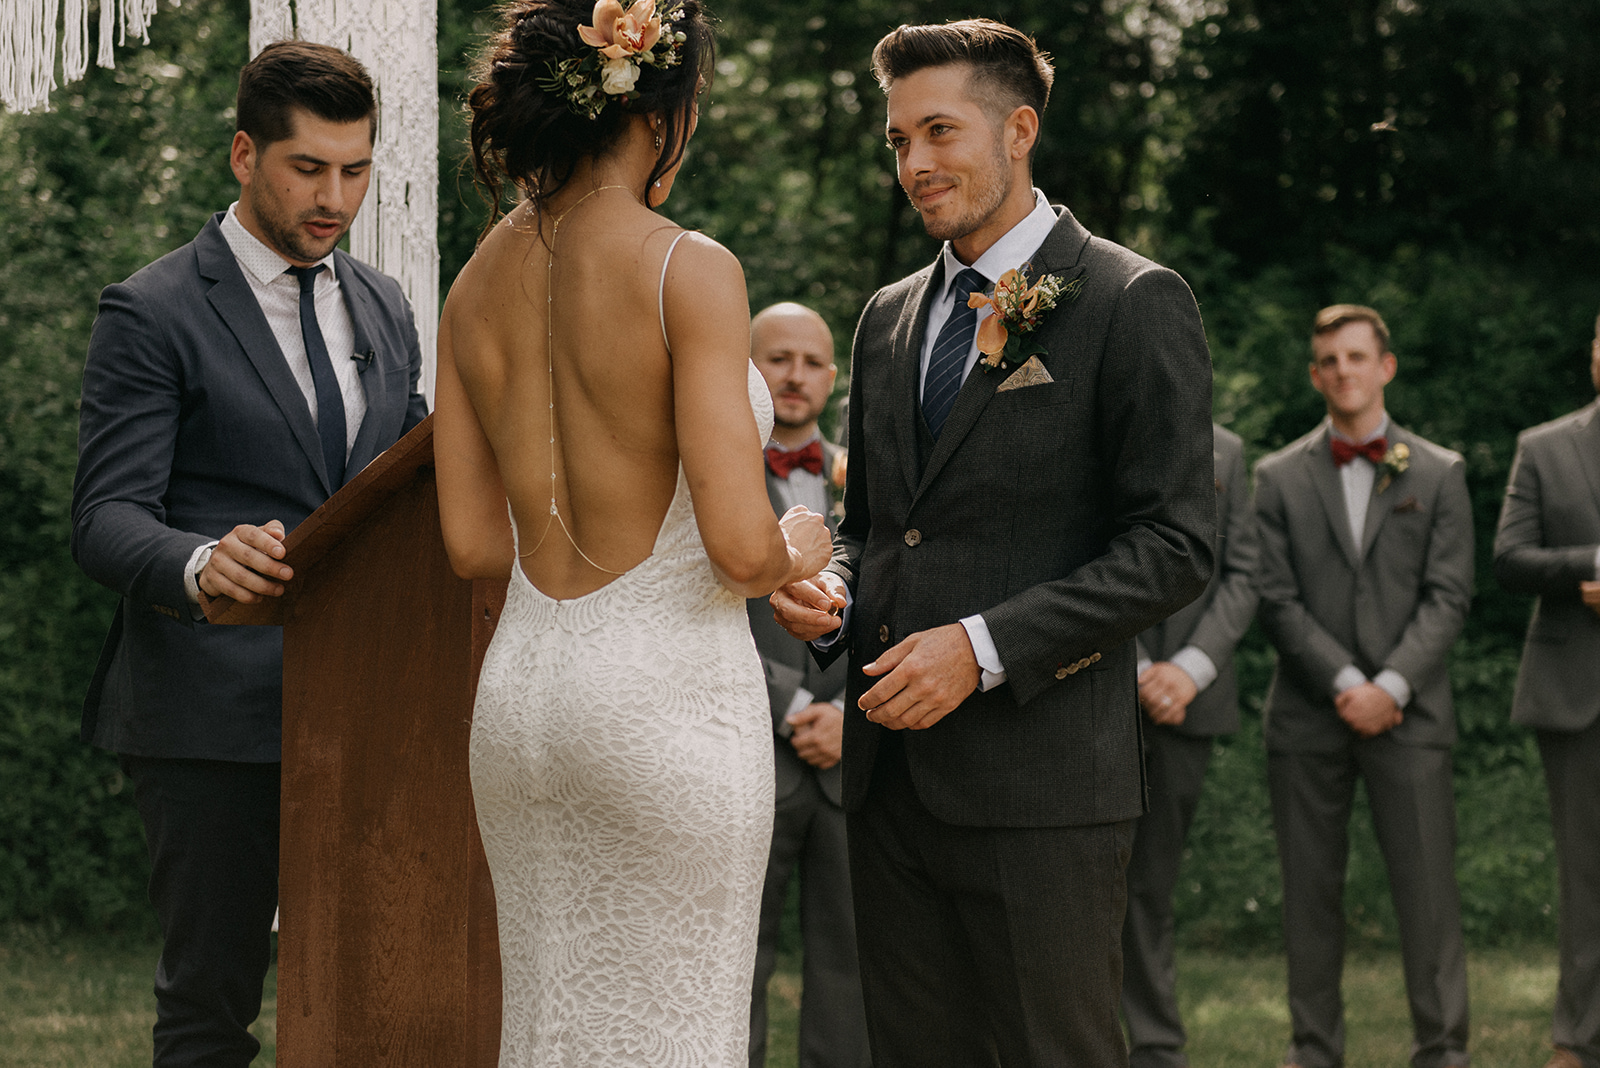 Ring exchange and wedding vows - Pearl Weddings & Events